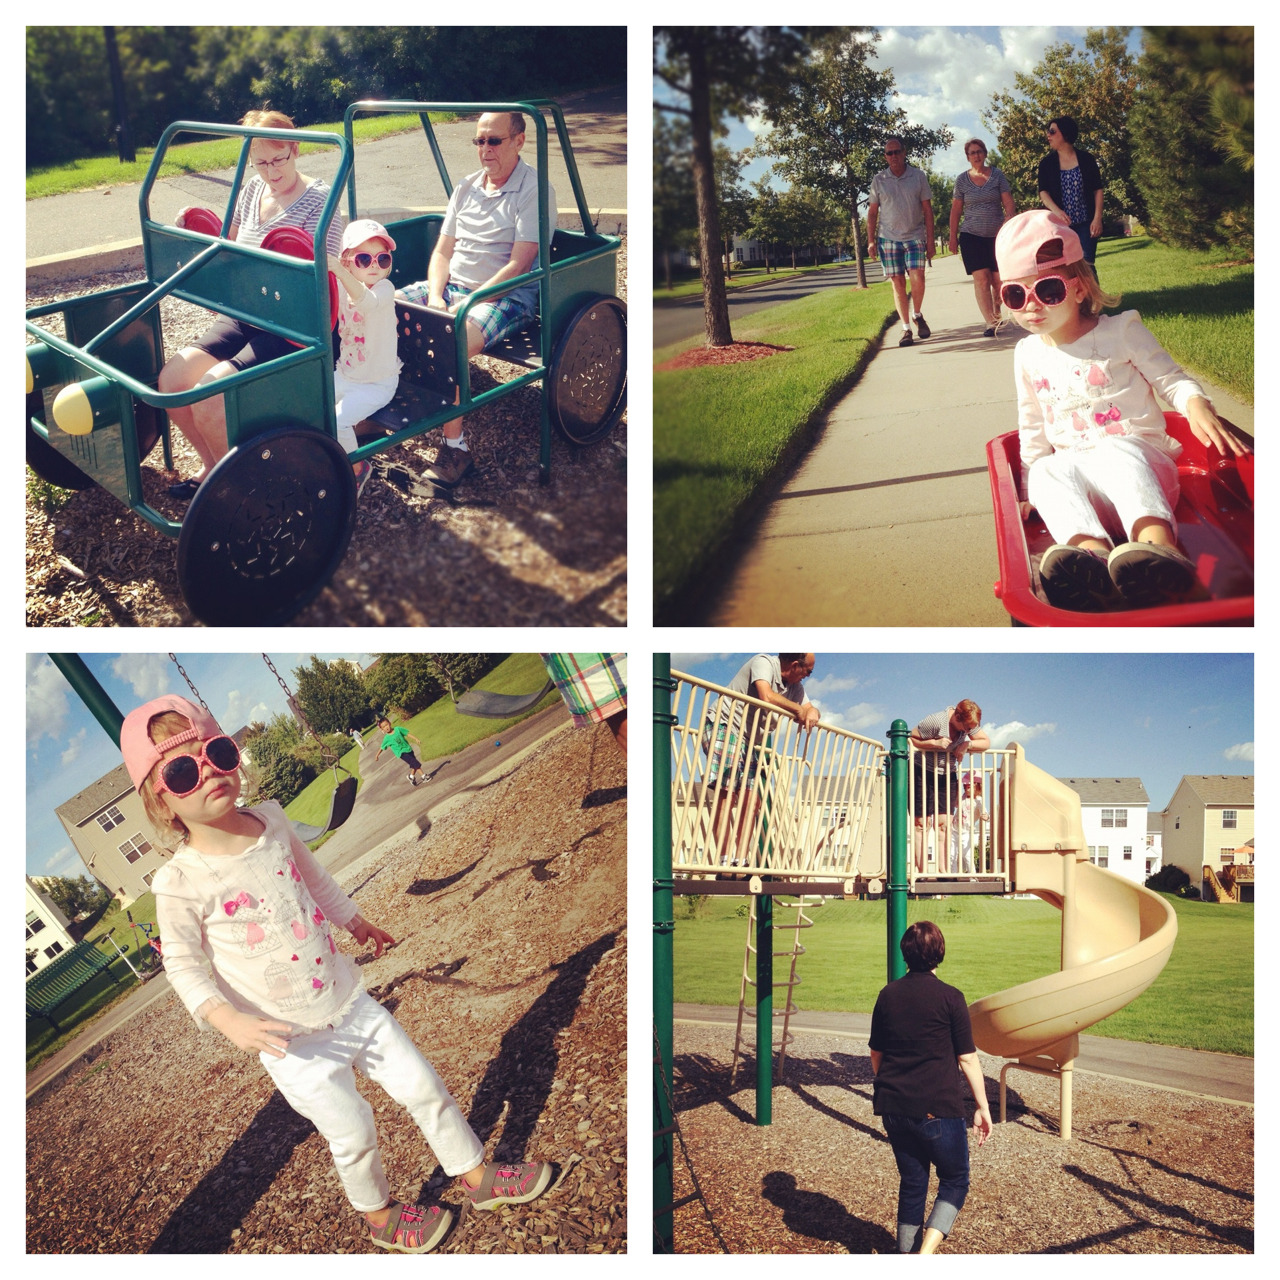 A walk in the wagon with Grandma, Grandpa, Mommy and Daddy on the way to the green playground.